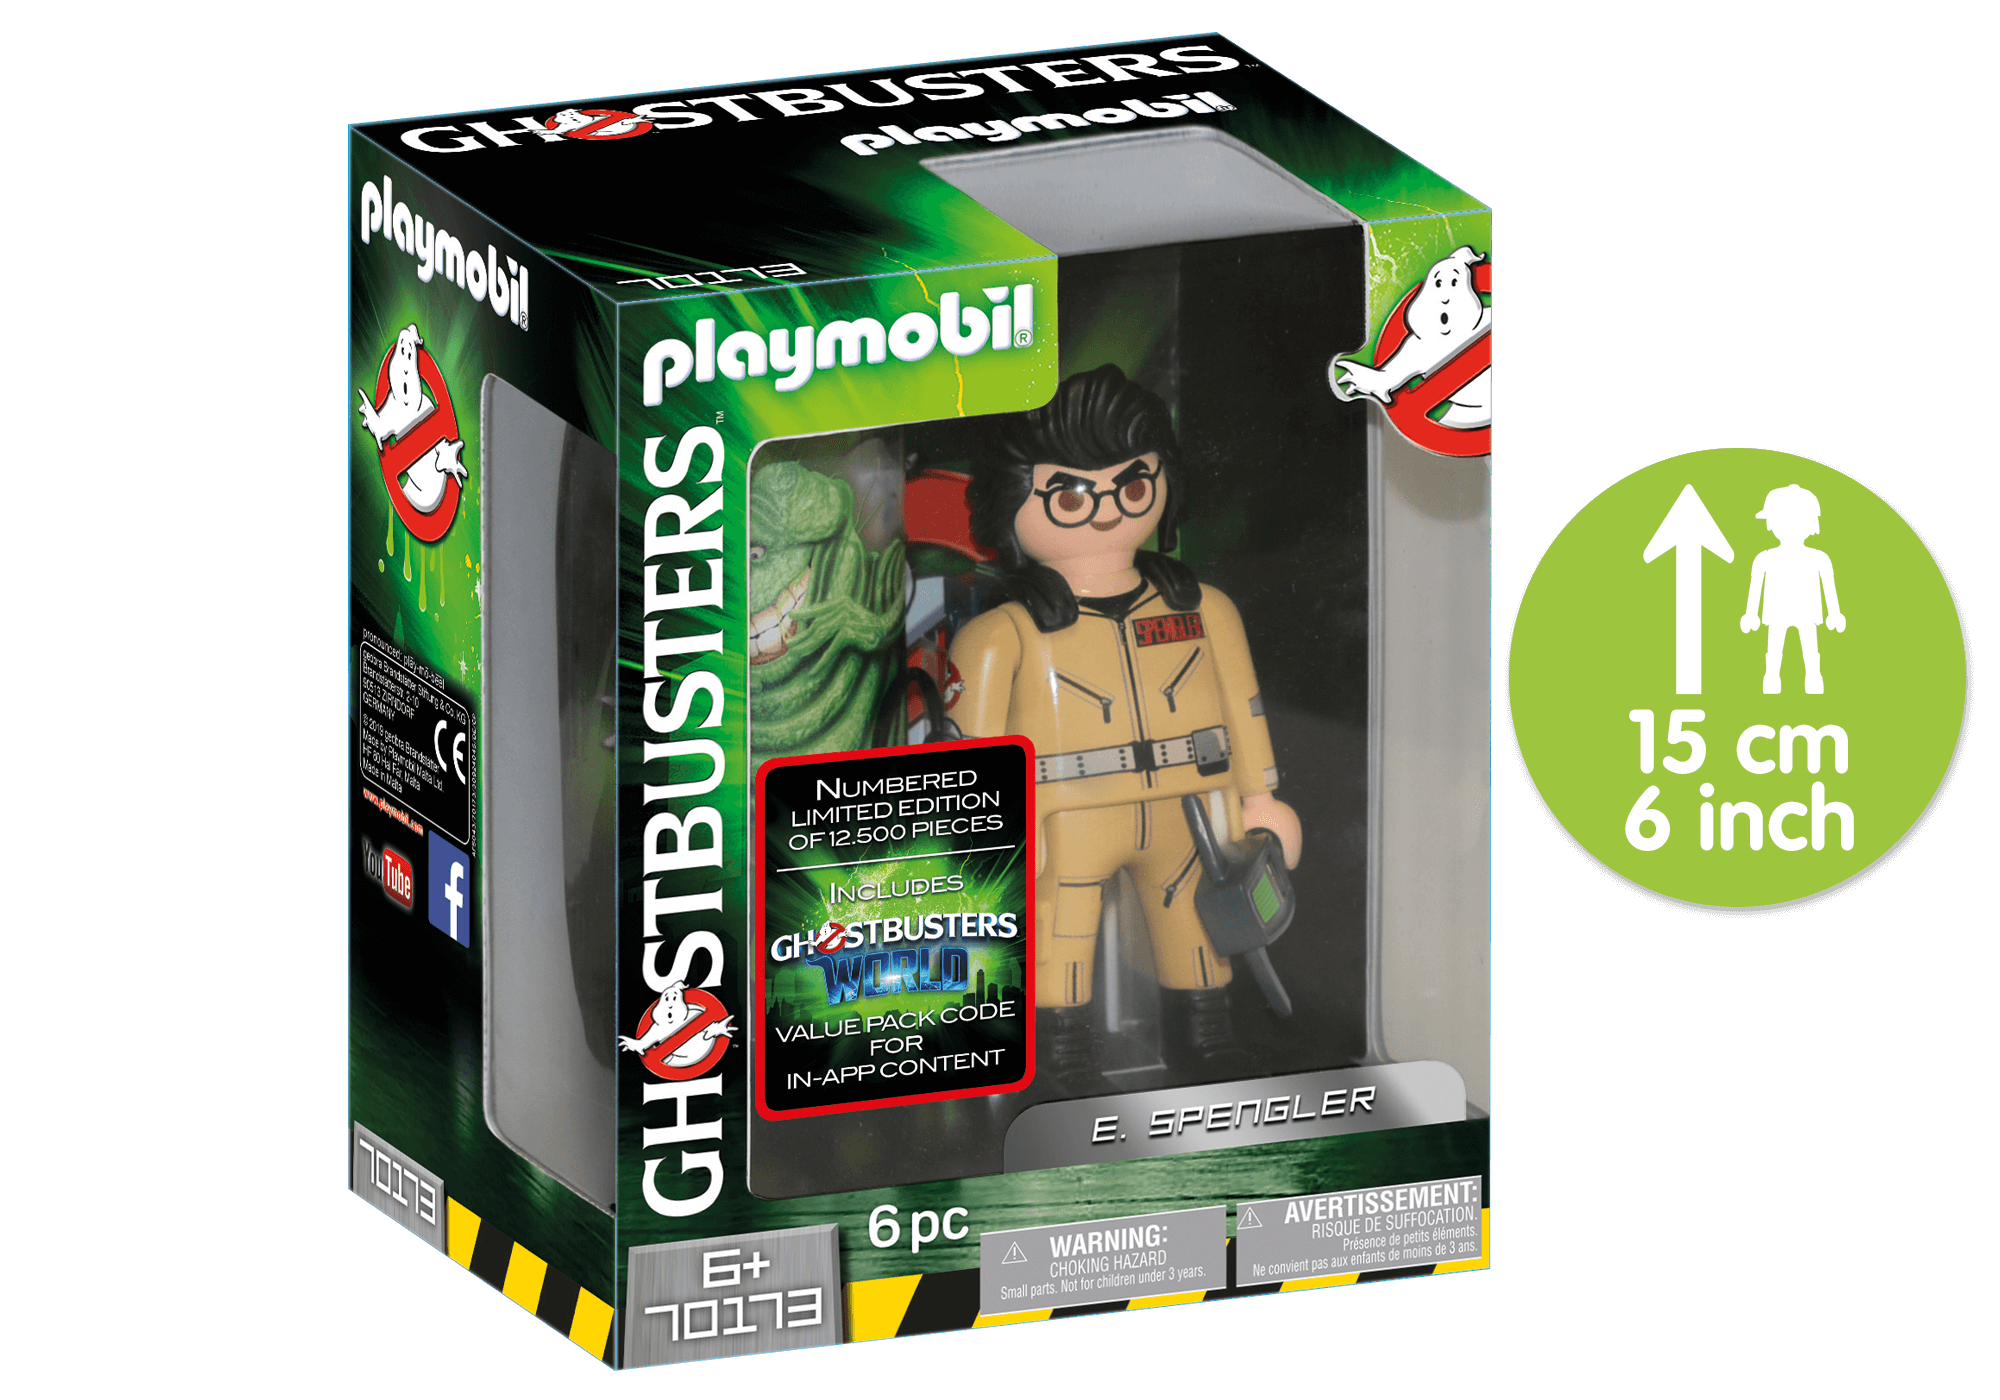 http://media.playmobil.com/i/playmobil/70173_product_detail/Ghostbusters™  Edition Collector  E. Spengler